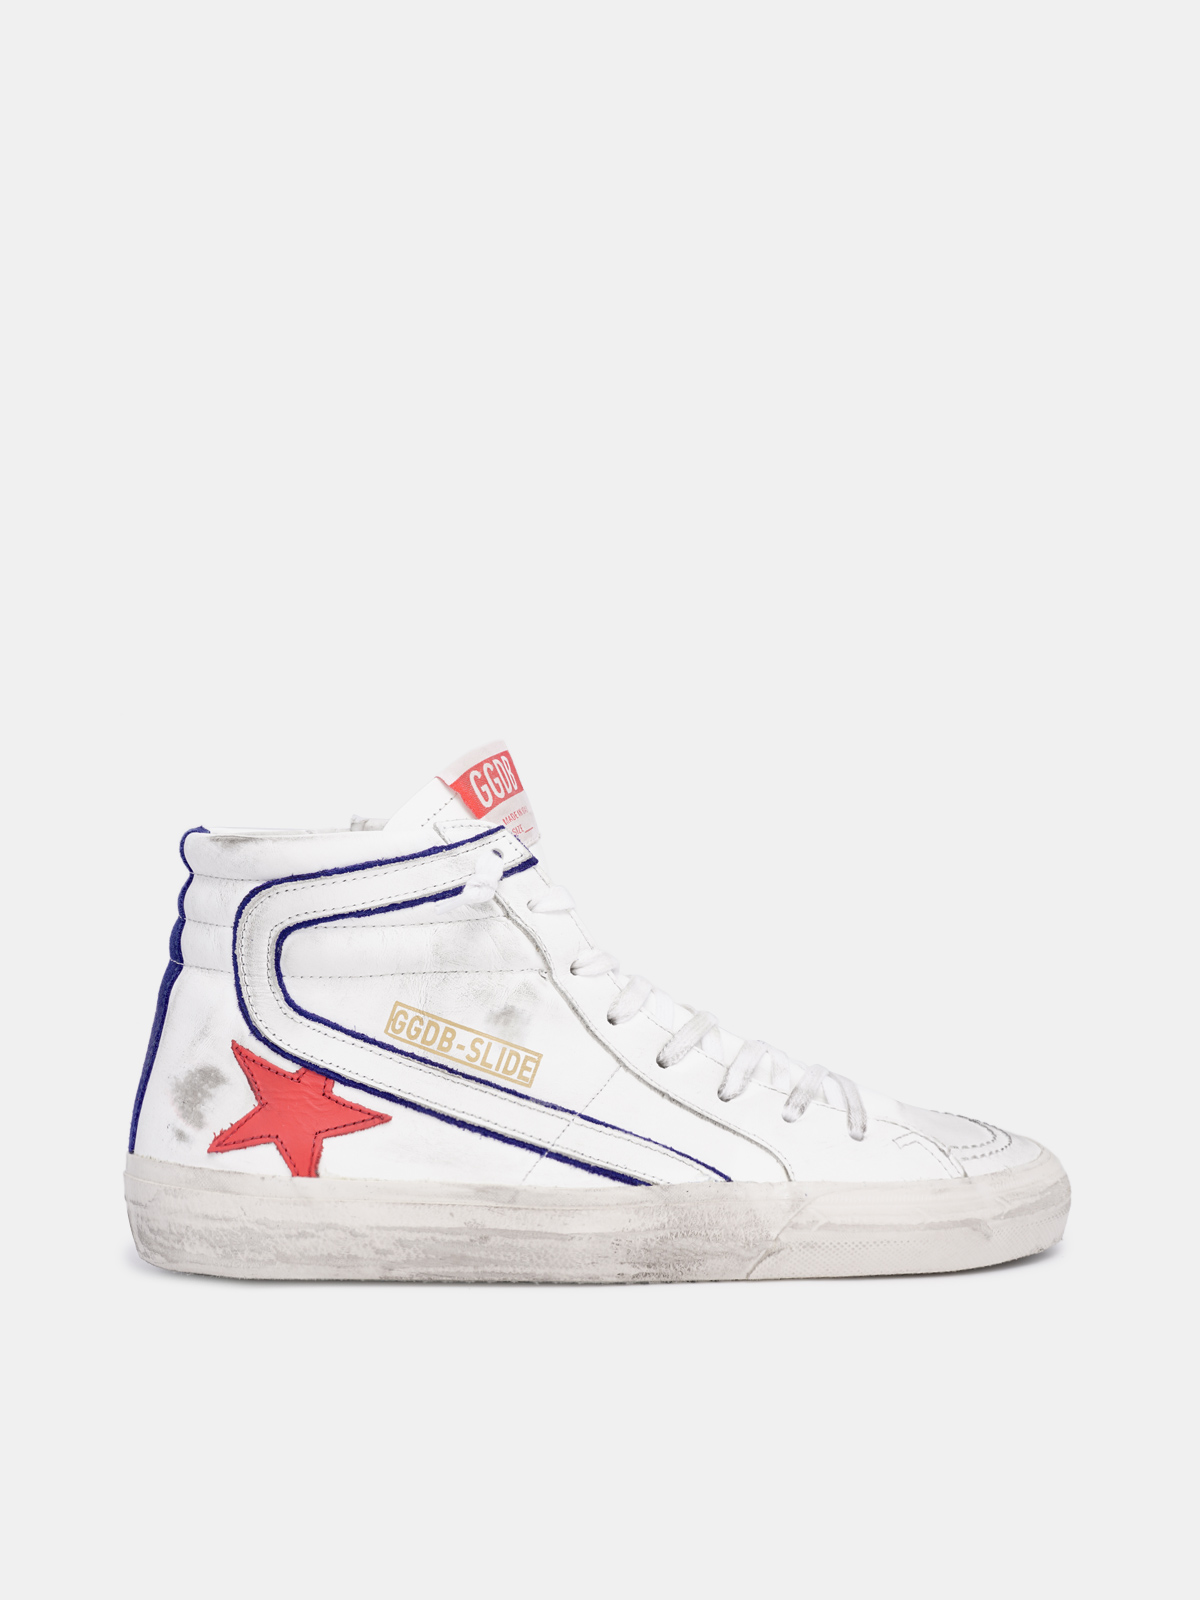 Golden Goose - White Slide sneakers with blue piping and red star in